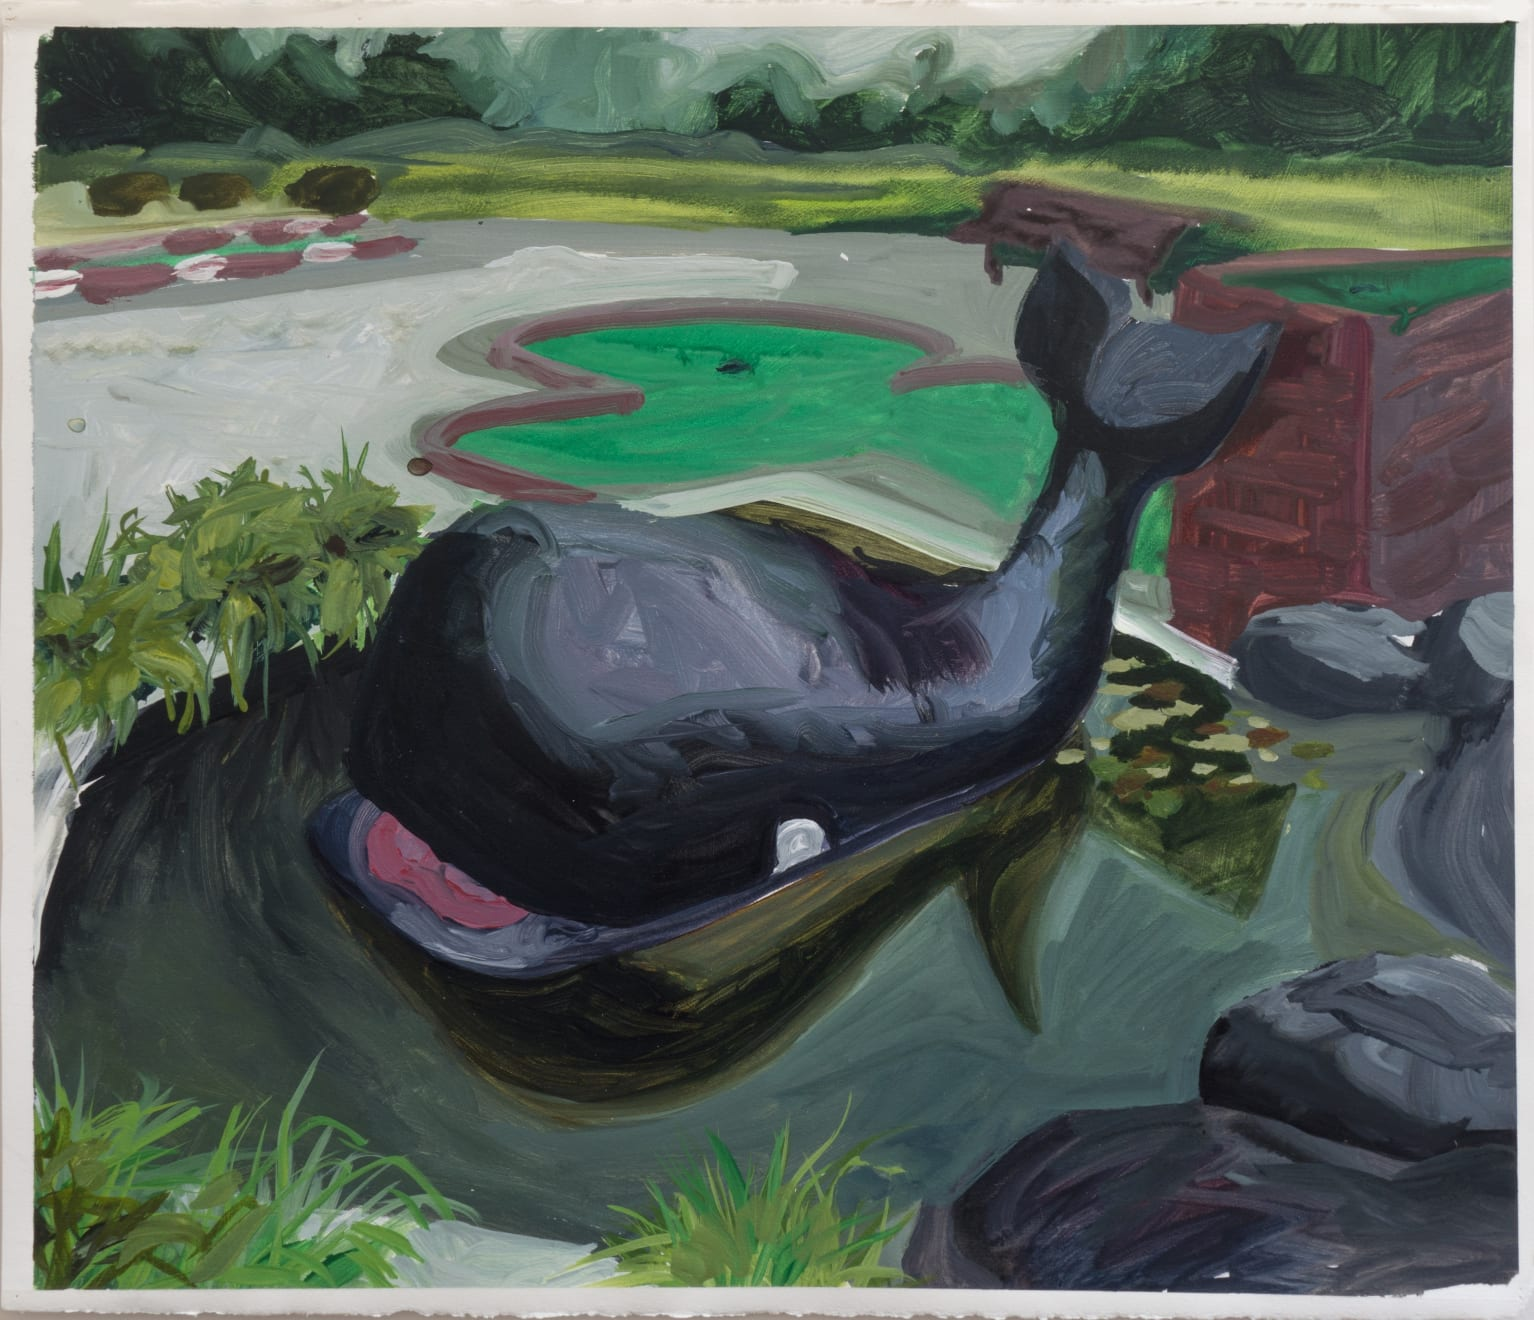 Kristin Musgnug, Little Whale, 2000 acrylic on paper, 22 x 25 in